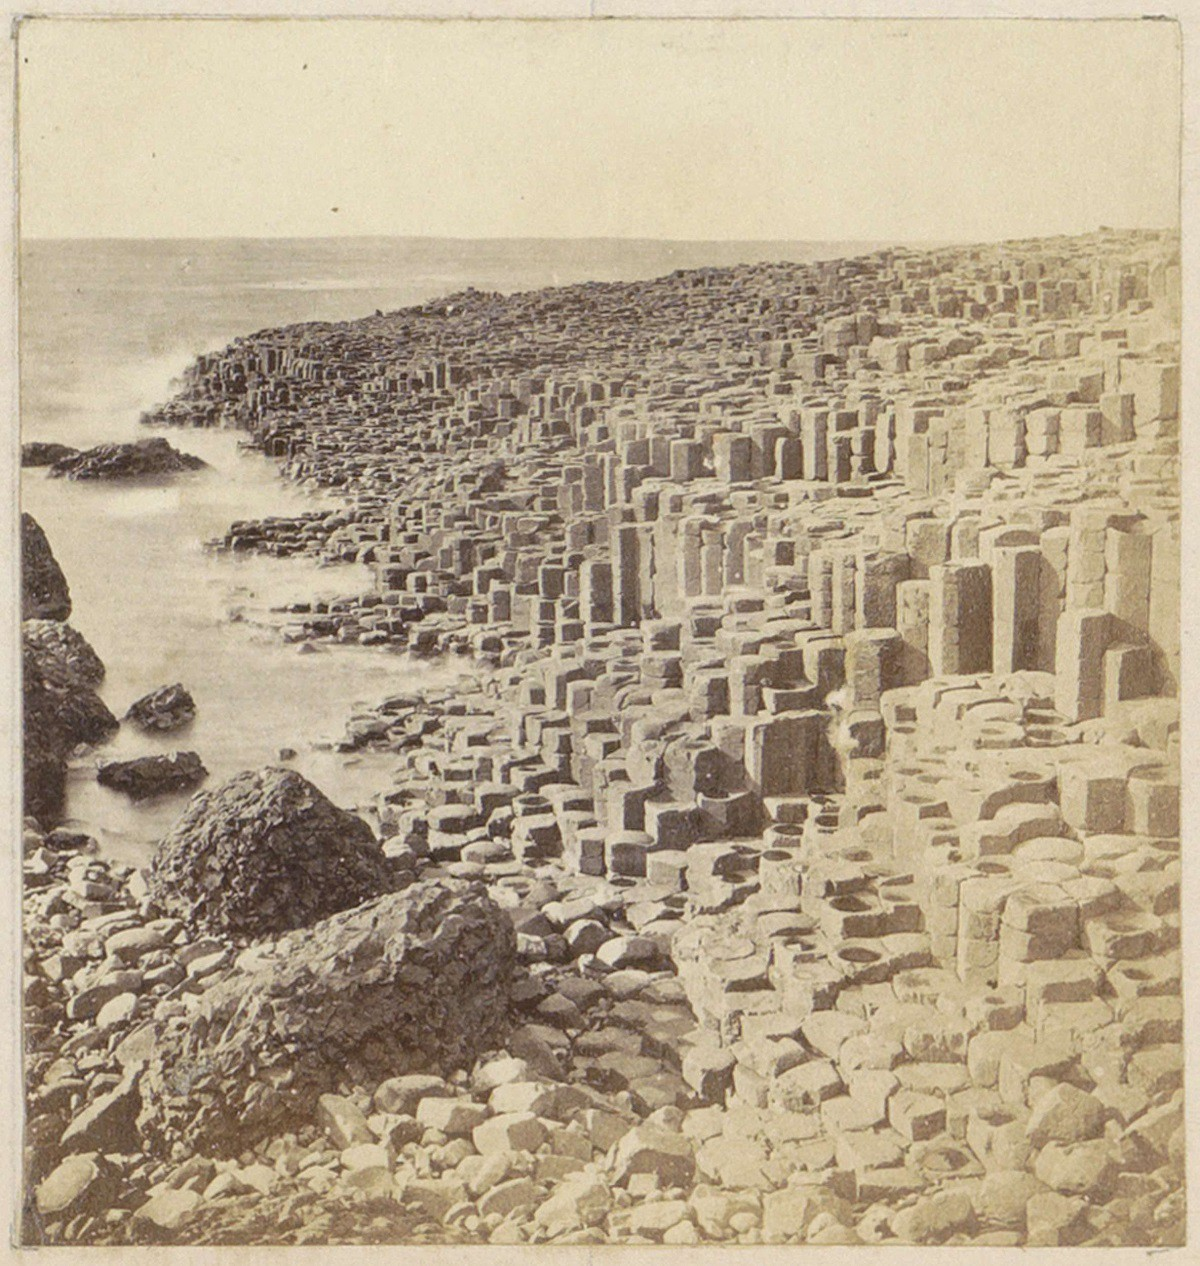 Photograph of the Giant's Causeway in Ireland—stones standing upright by the sea